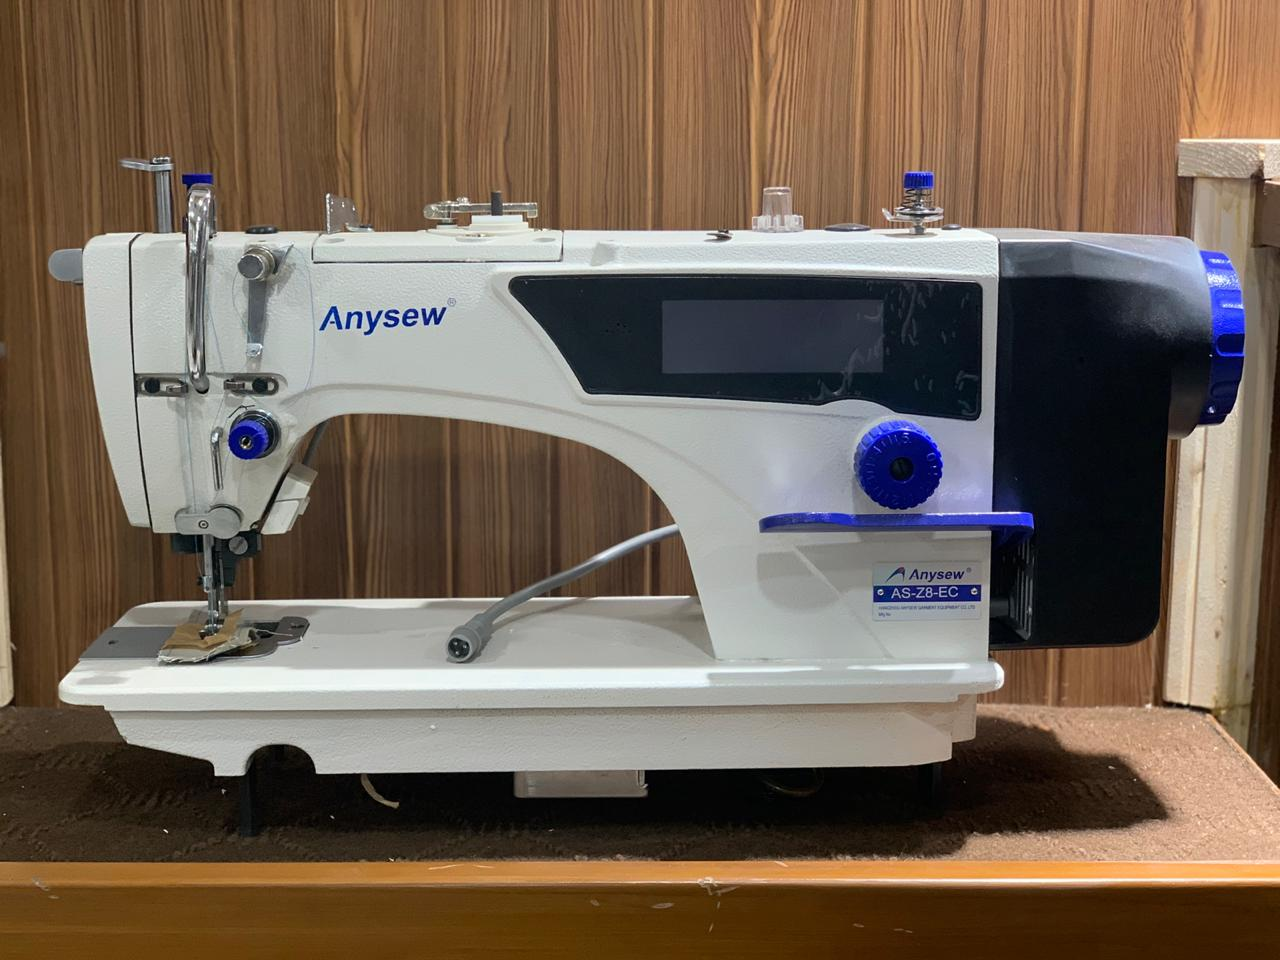 AS-Z8 Full Auto with Edge Cutter